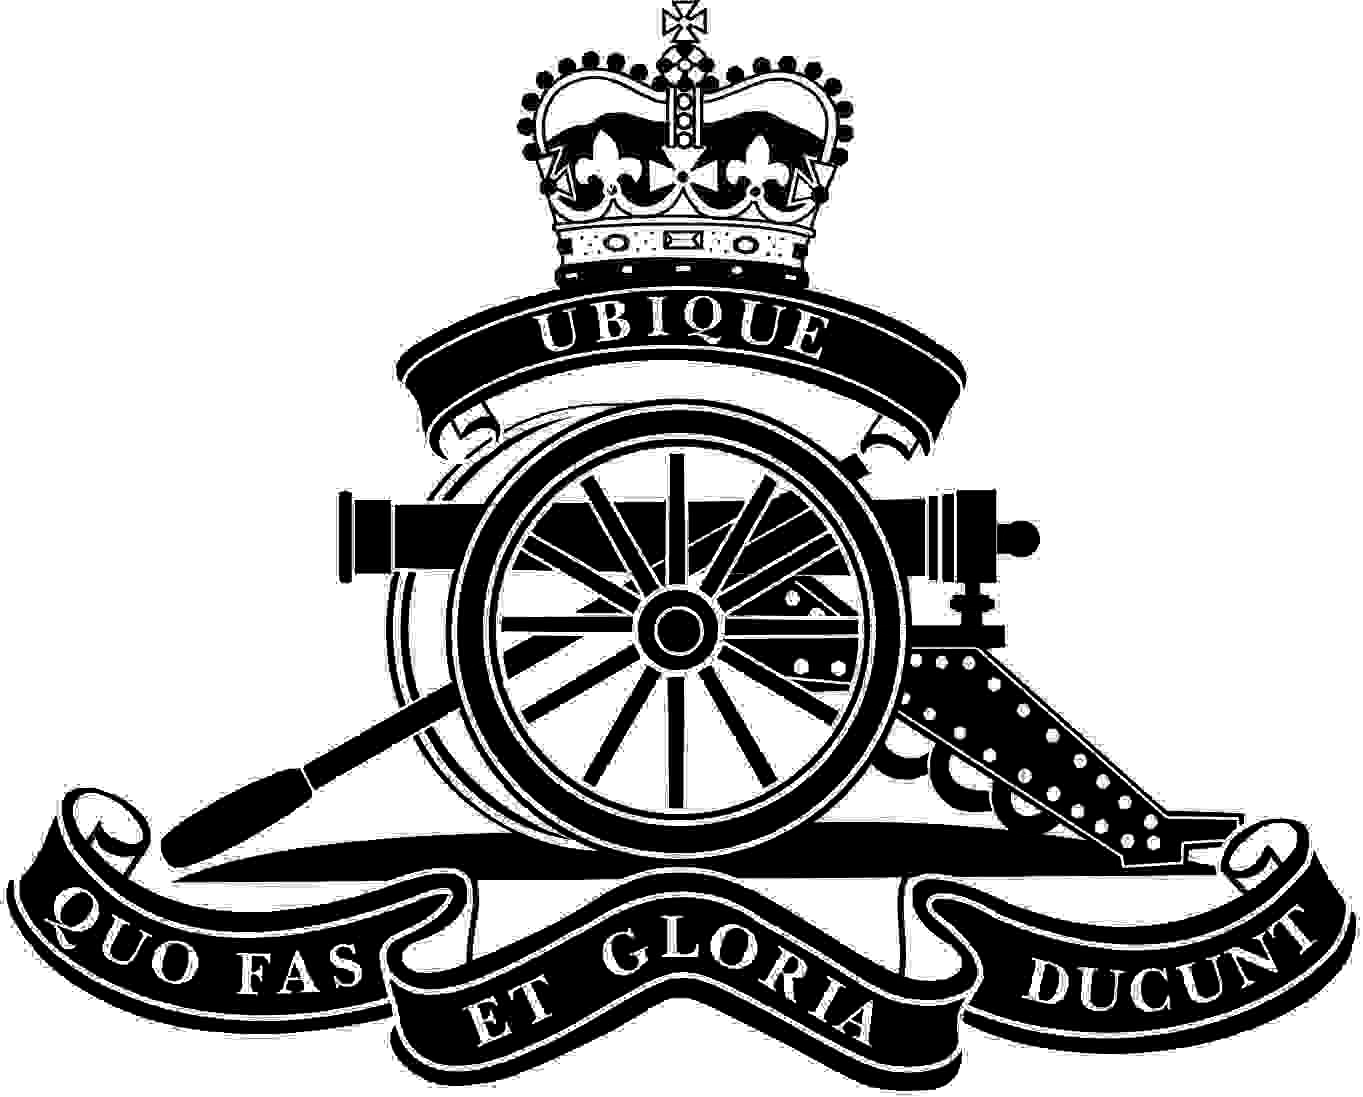 The badge of the Royal Artillery is a cannon with a ribbon above and below with the words Ubique above and Quo Fas Et Gloria Ducunt Below all topped by a crown. My impression of the badge of the badge of the Royal Artillery. Please note that all that is black is engraved onto the glass.